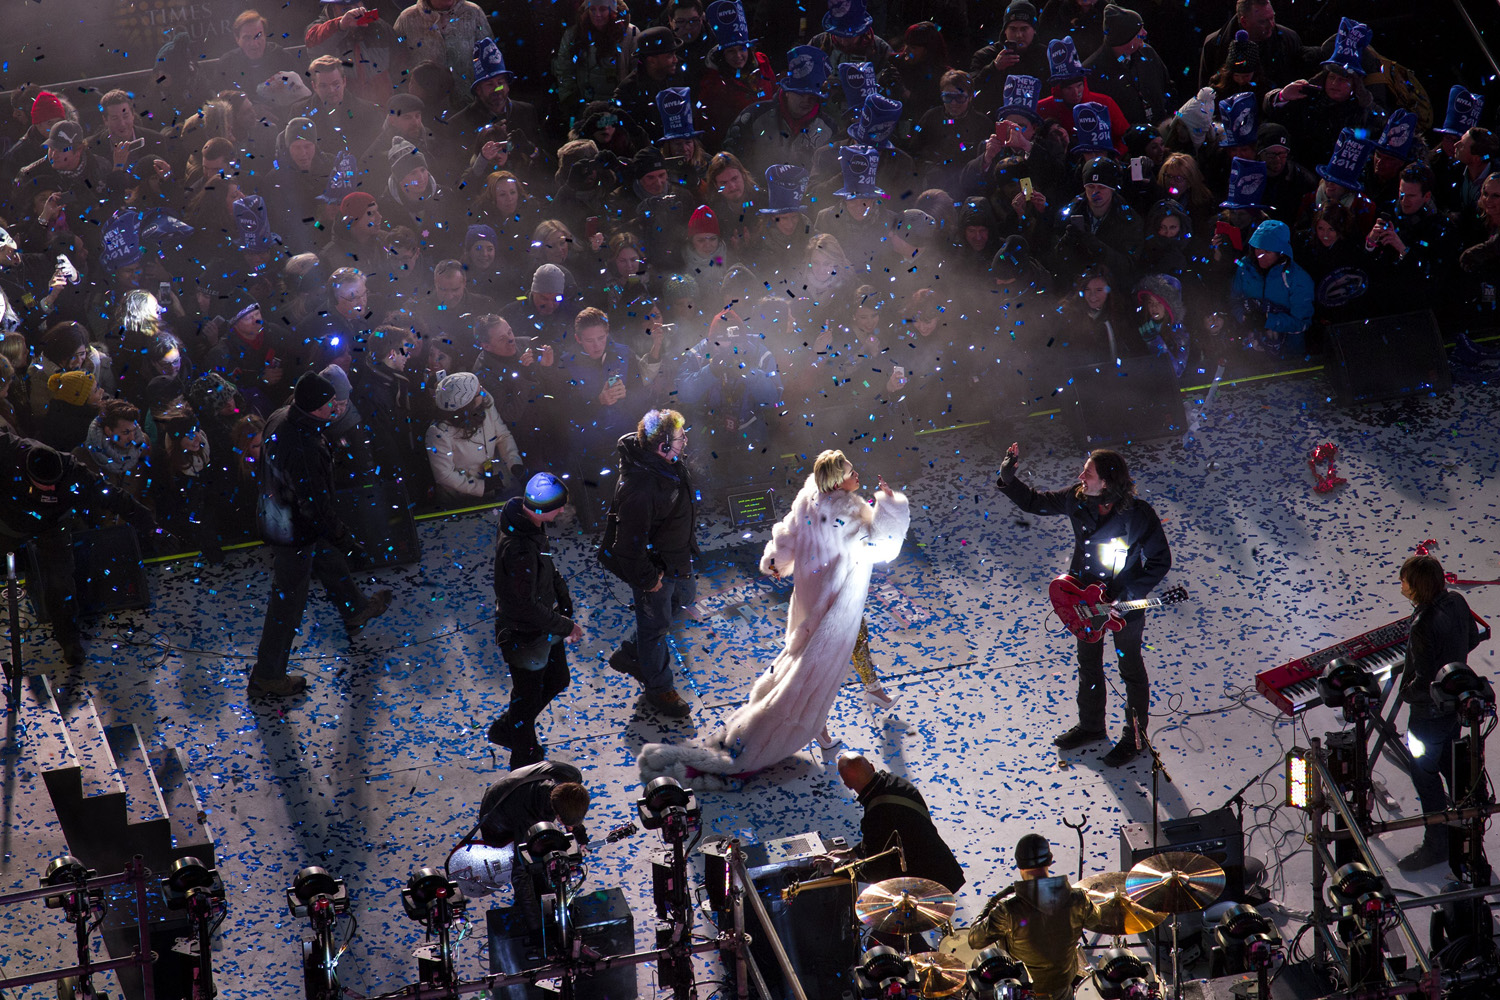 Dec. 31, 2013. Miley Cyrus leaves the stage after her performance in New York's Times Square during New Year's Eve celebrations.